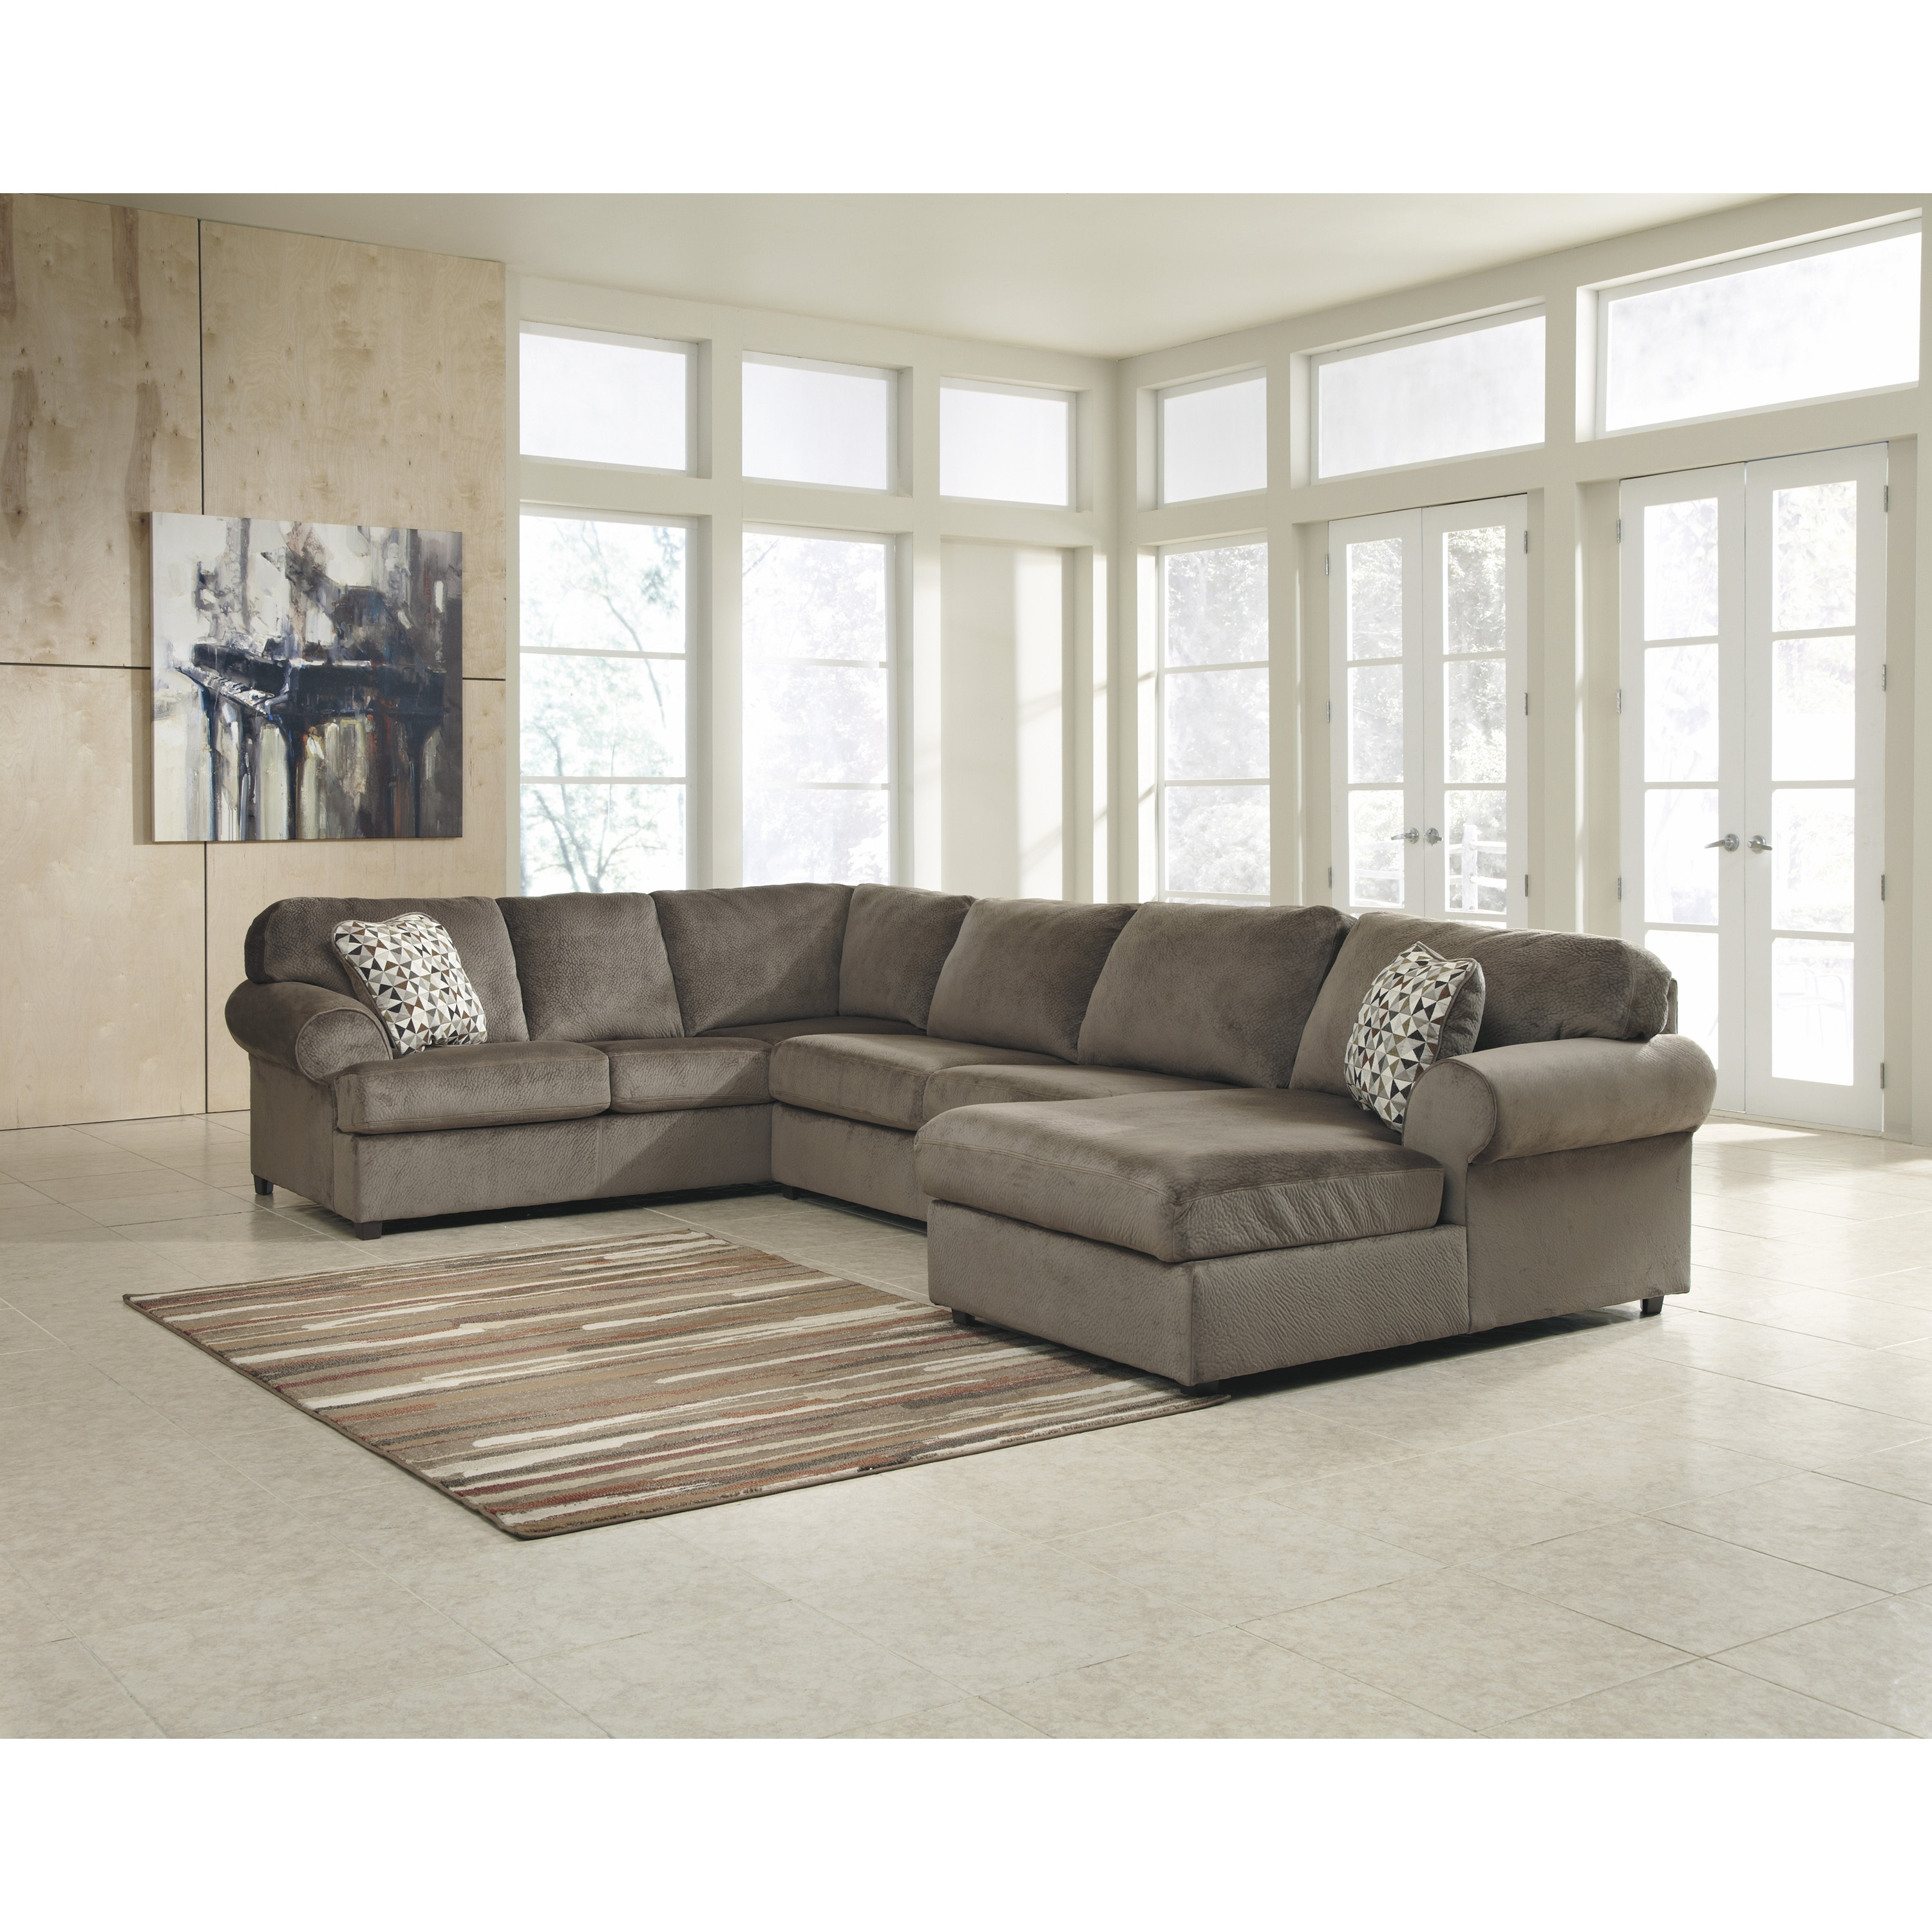 C Shaped Sectional Sofa Cleanupflorida For C Shaped Sectional Sofa (#4 of 12)